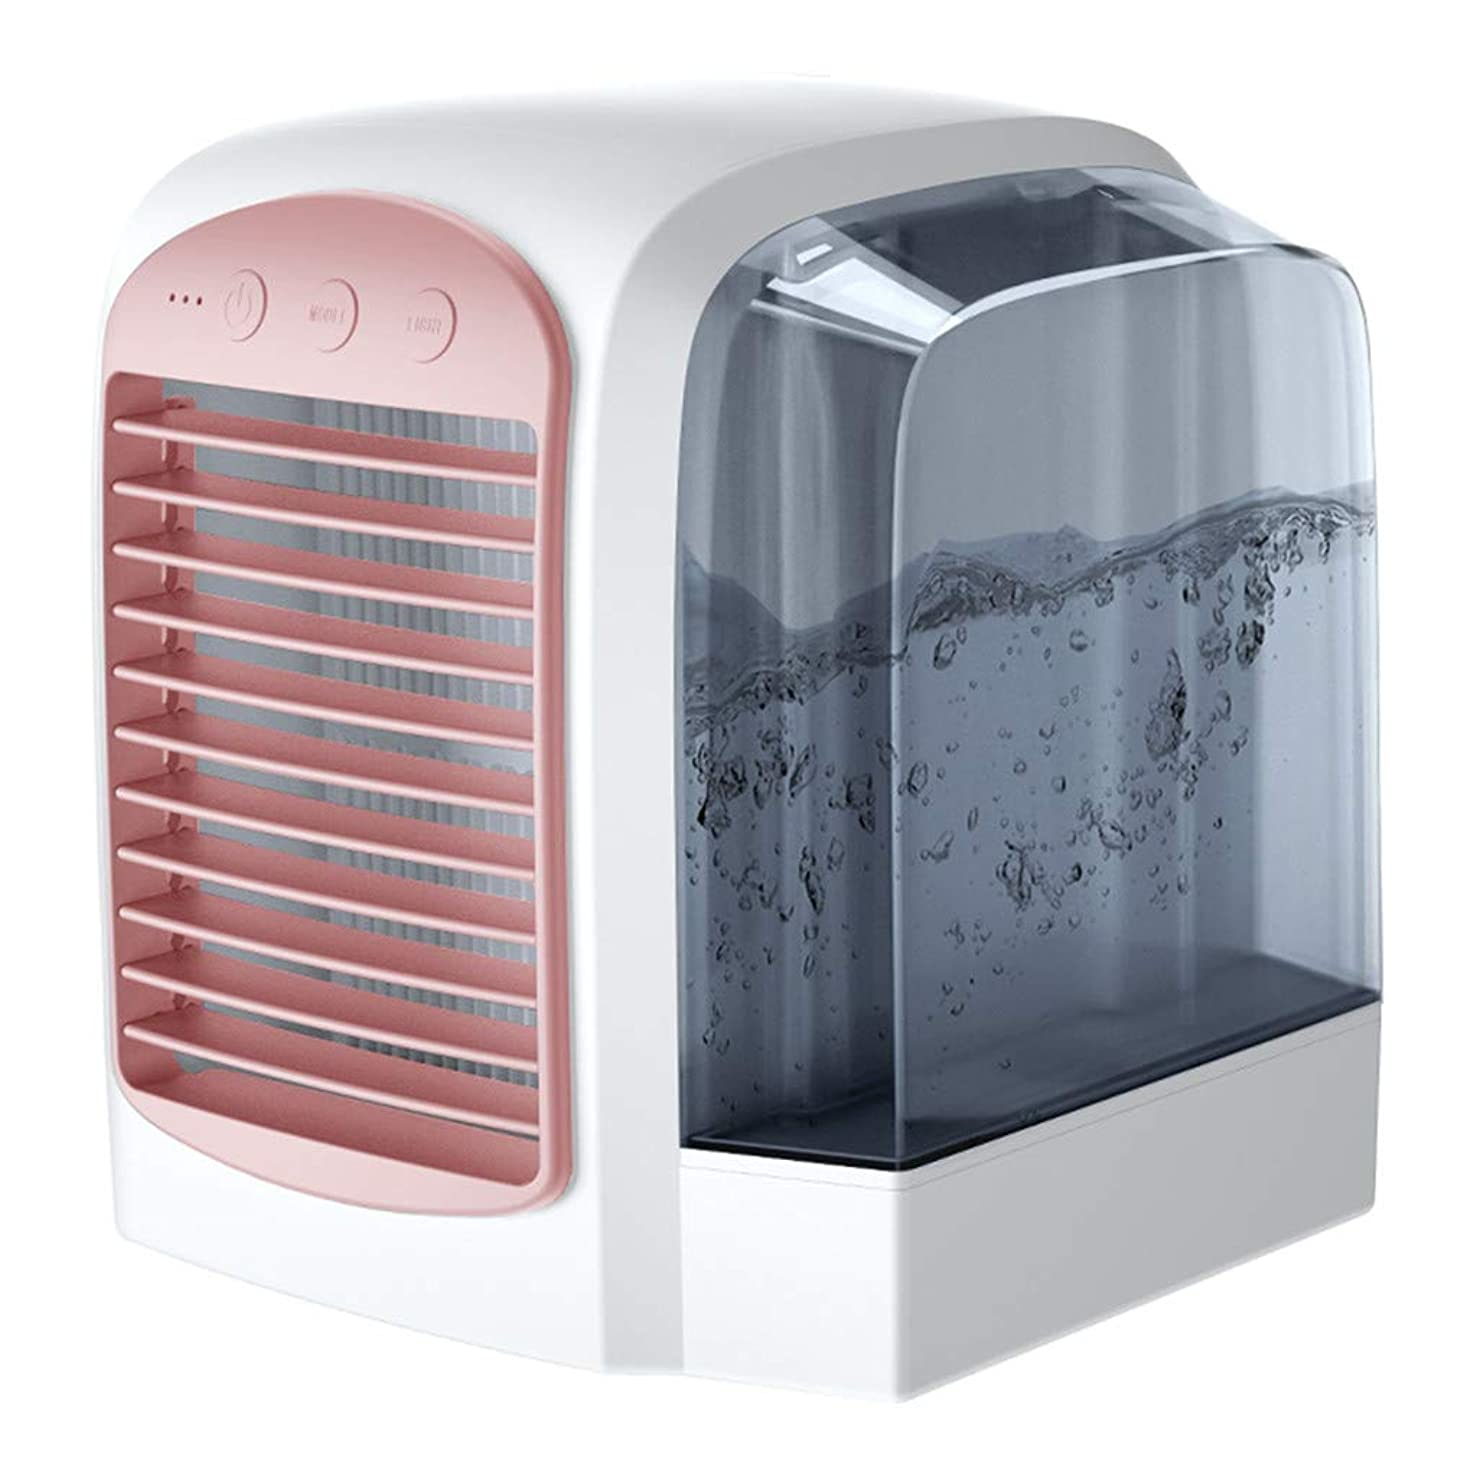 iLUGU Personal Space Mini Size Air Conditioner Fan Simple Air Cooler Air Humidifier Air Circulator Small Air Purifier Evaporative Cooler for Home Bedroom Office